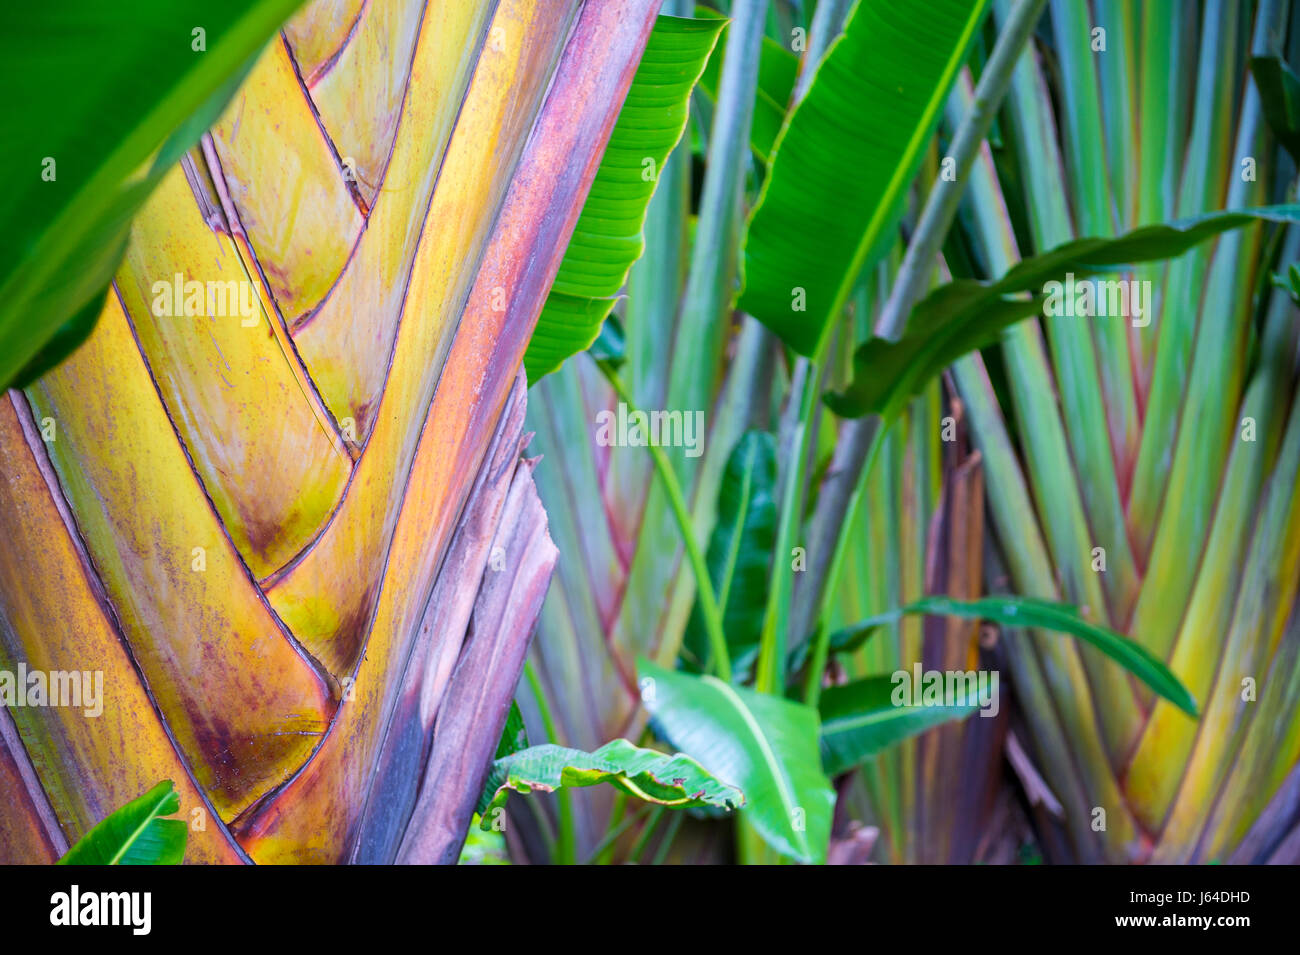 Bright and colorful natural background of the fan shapes of traveler palm trees growing in a tropical garden - Stock Image